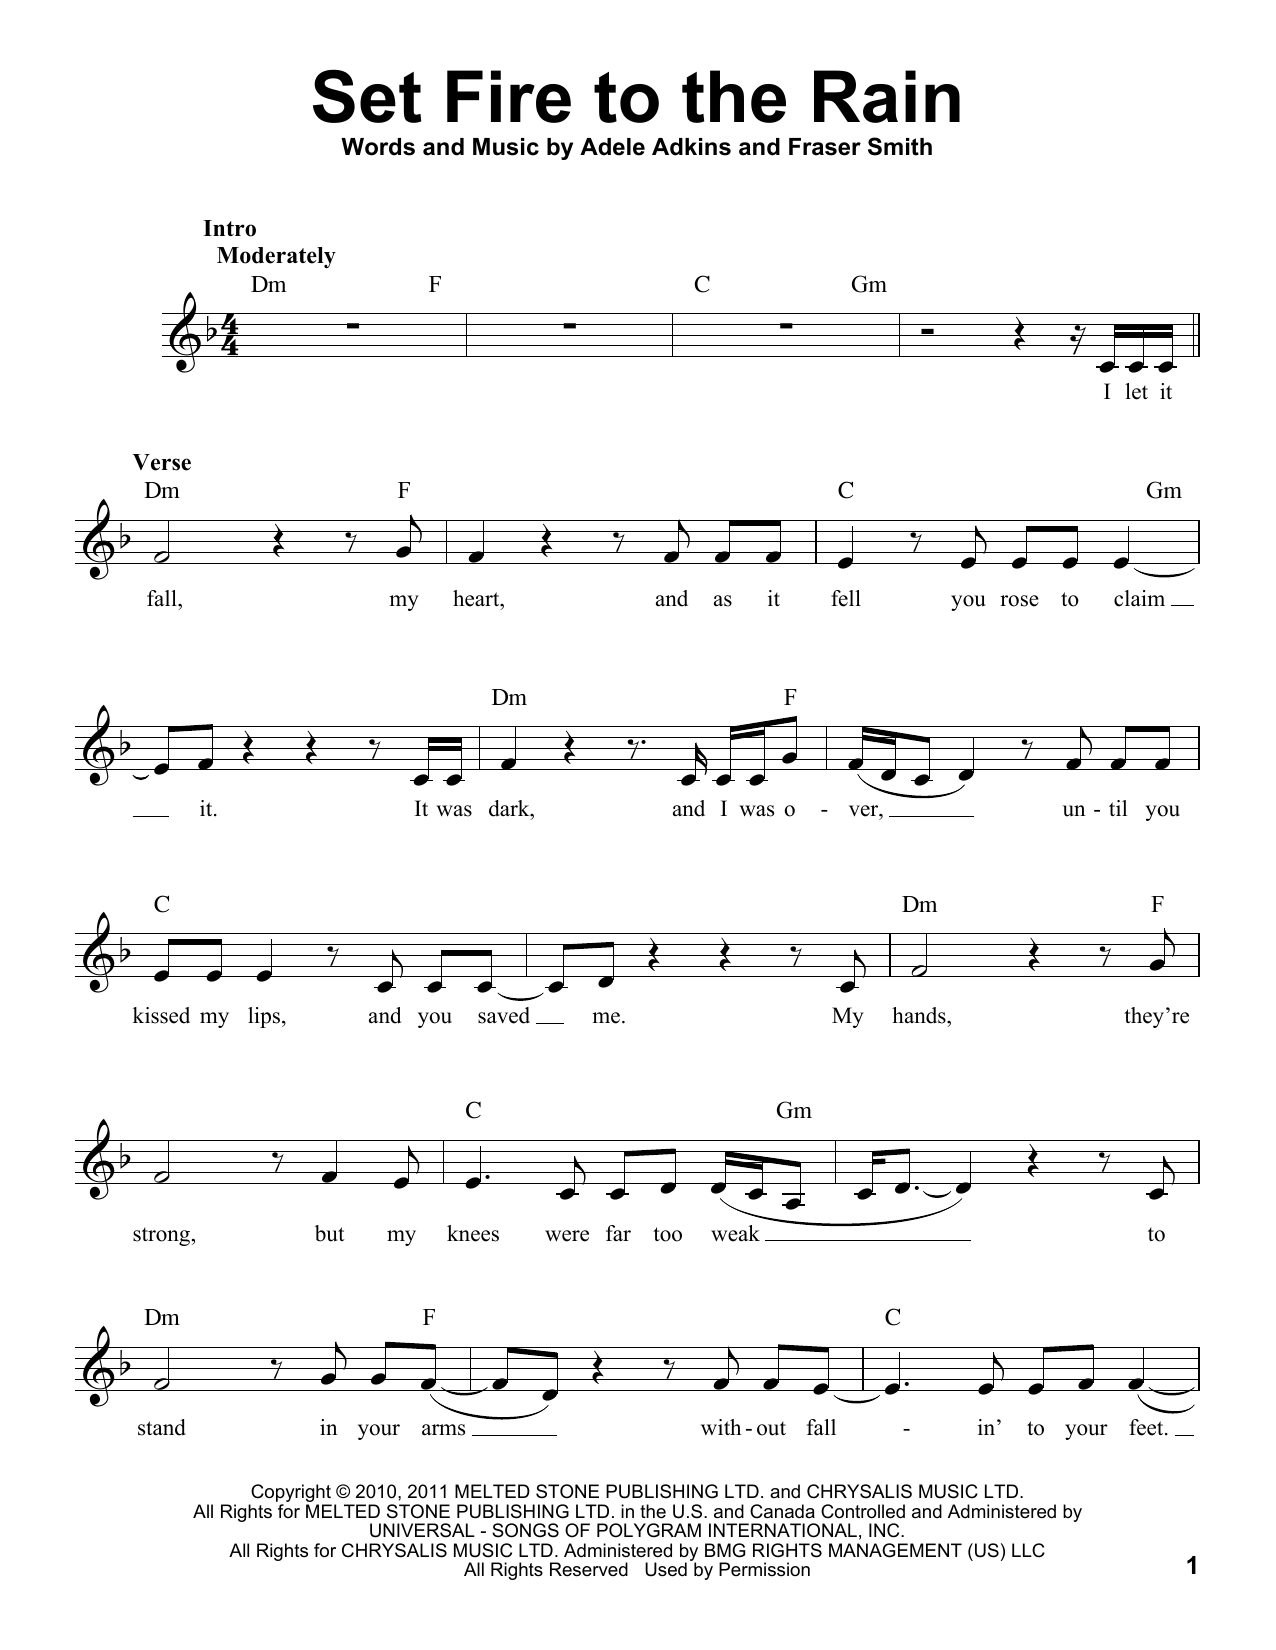 Adele 'Set Fire To The Rain' Sheet Music Notes, Chords | Download Printable  Voice - SKU: 166643